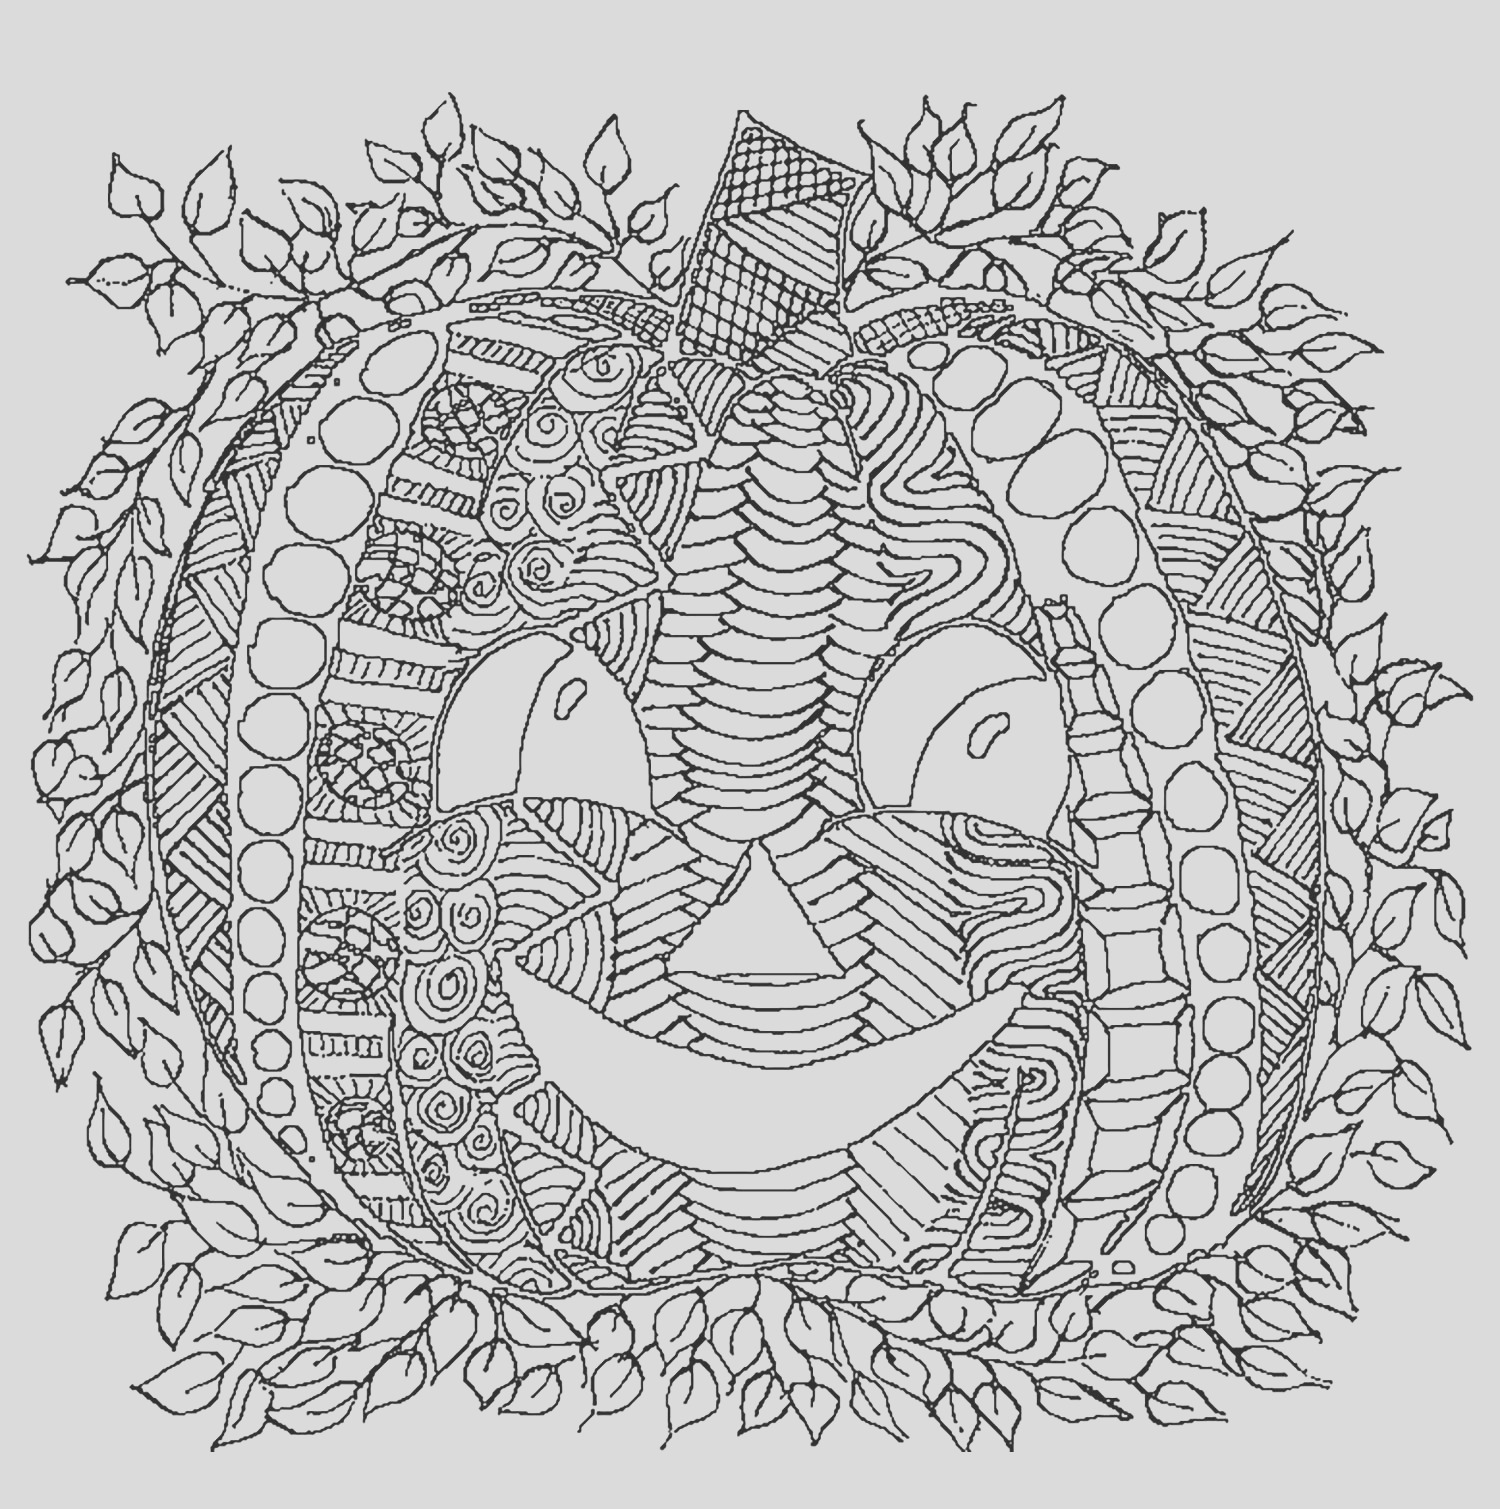 halloween adult coloring pages image=events halloween coloring adult halloween pumpkin drawing 1